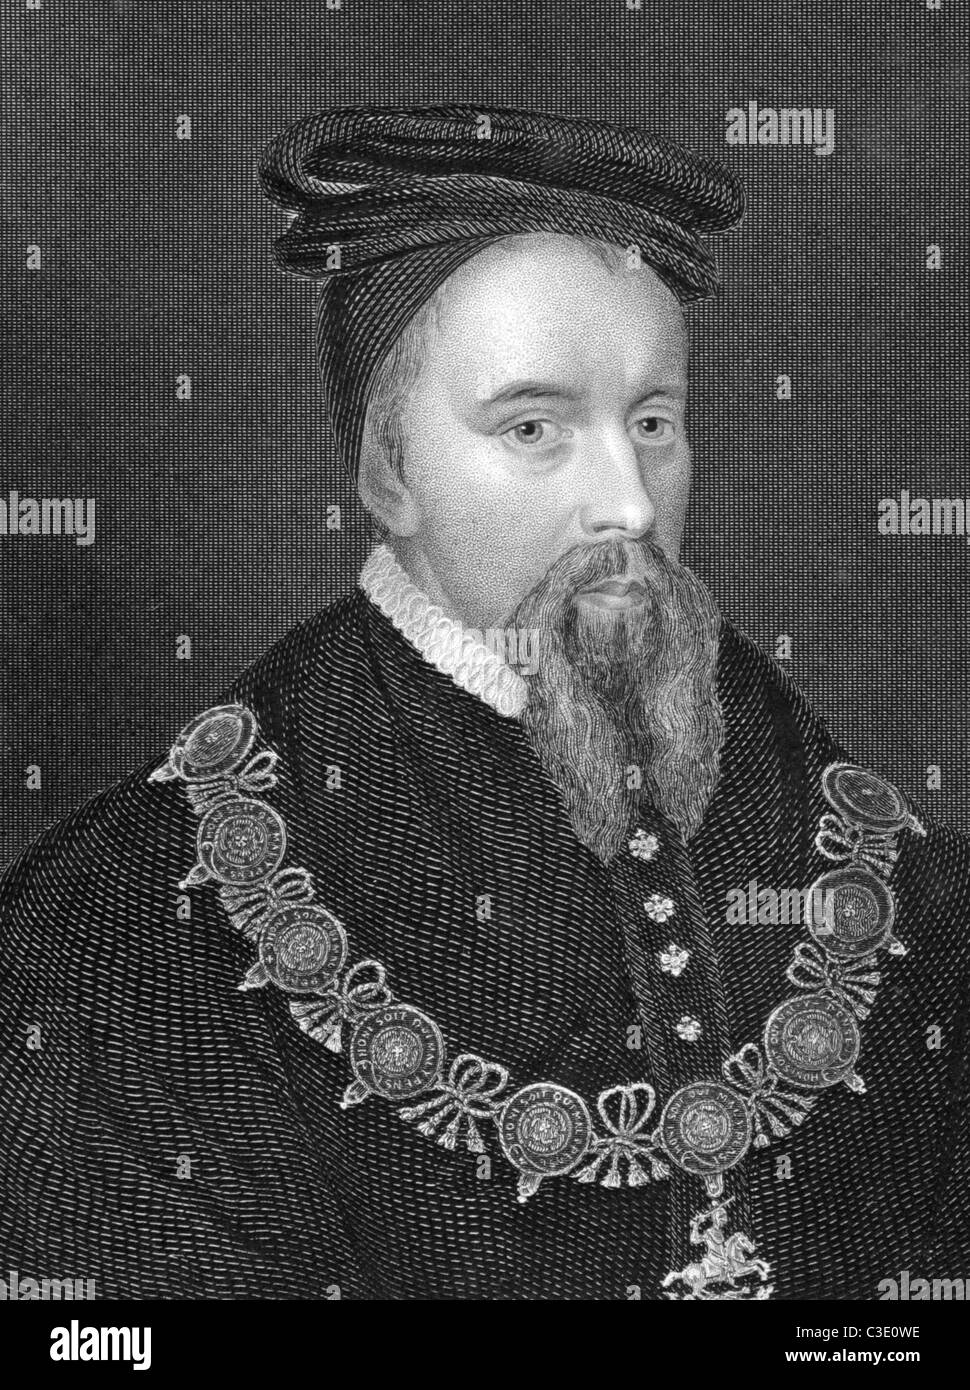 Thomas Stanley, 1st Earl of Derby (1435-1504) on engraving from 1838. Titular King of Mann, English nobleman. - Stock Image